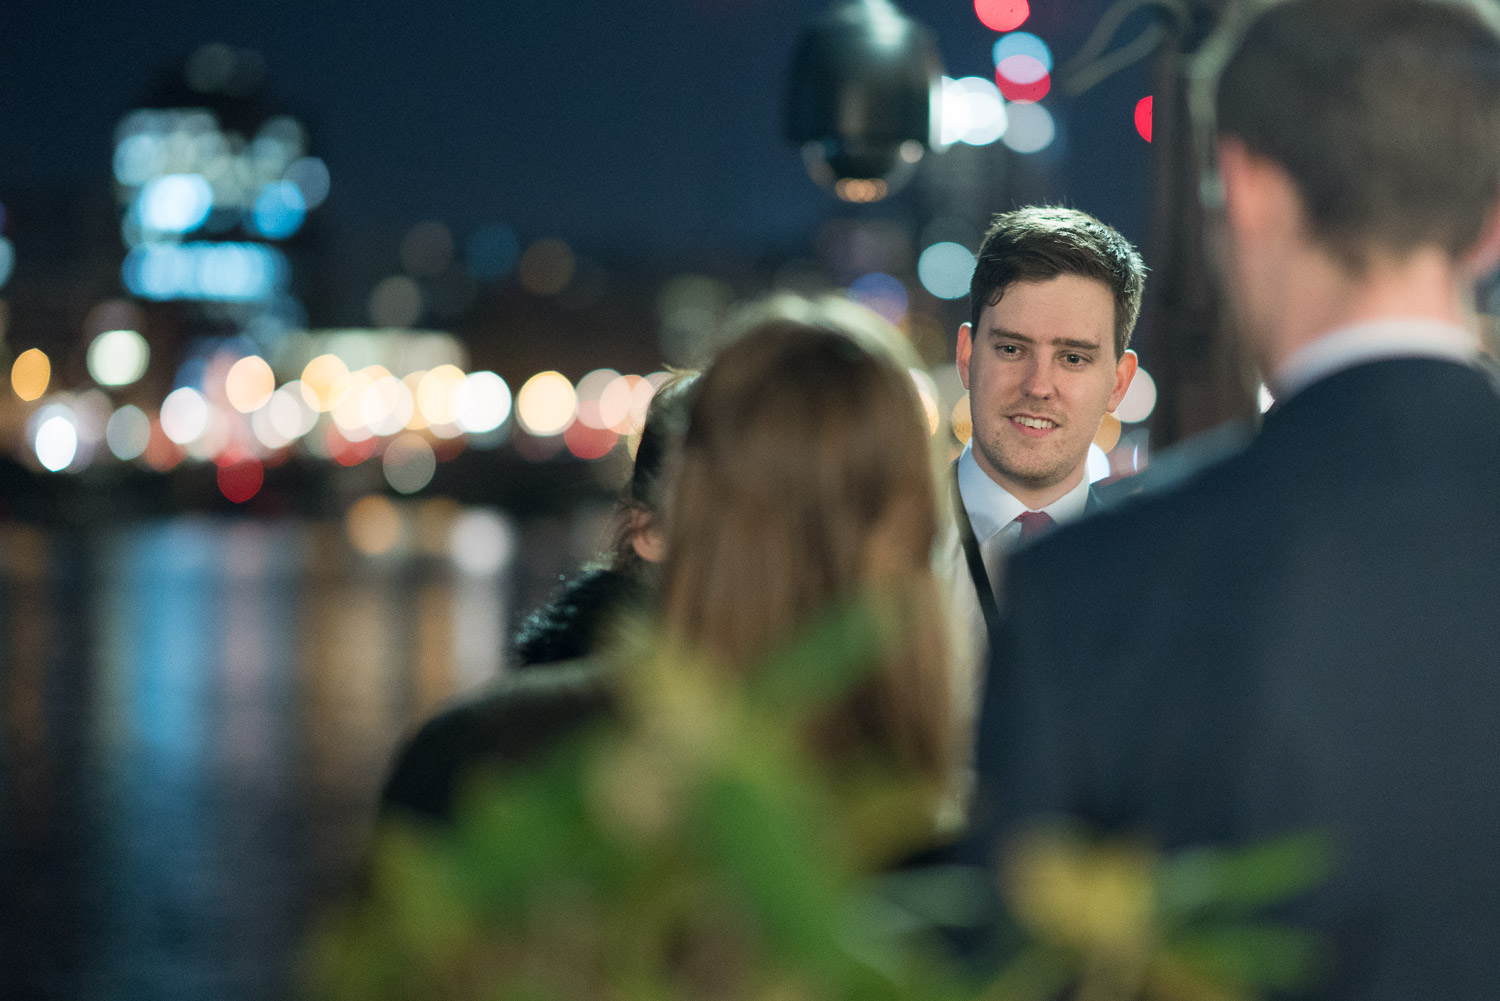 Brief: Photographs of a drinks reception by the River Thames. Venue: House of Lords.